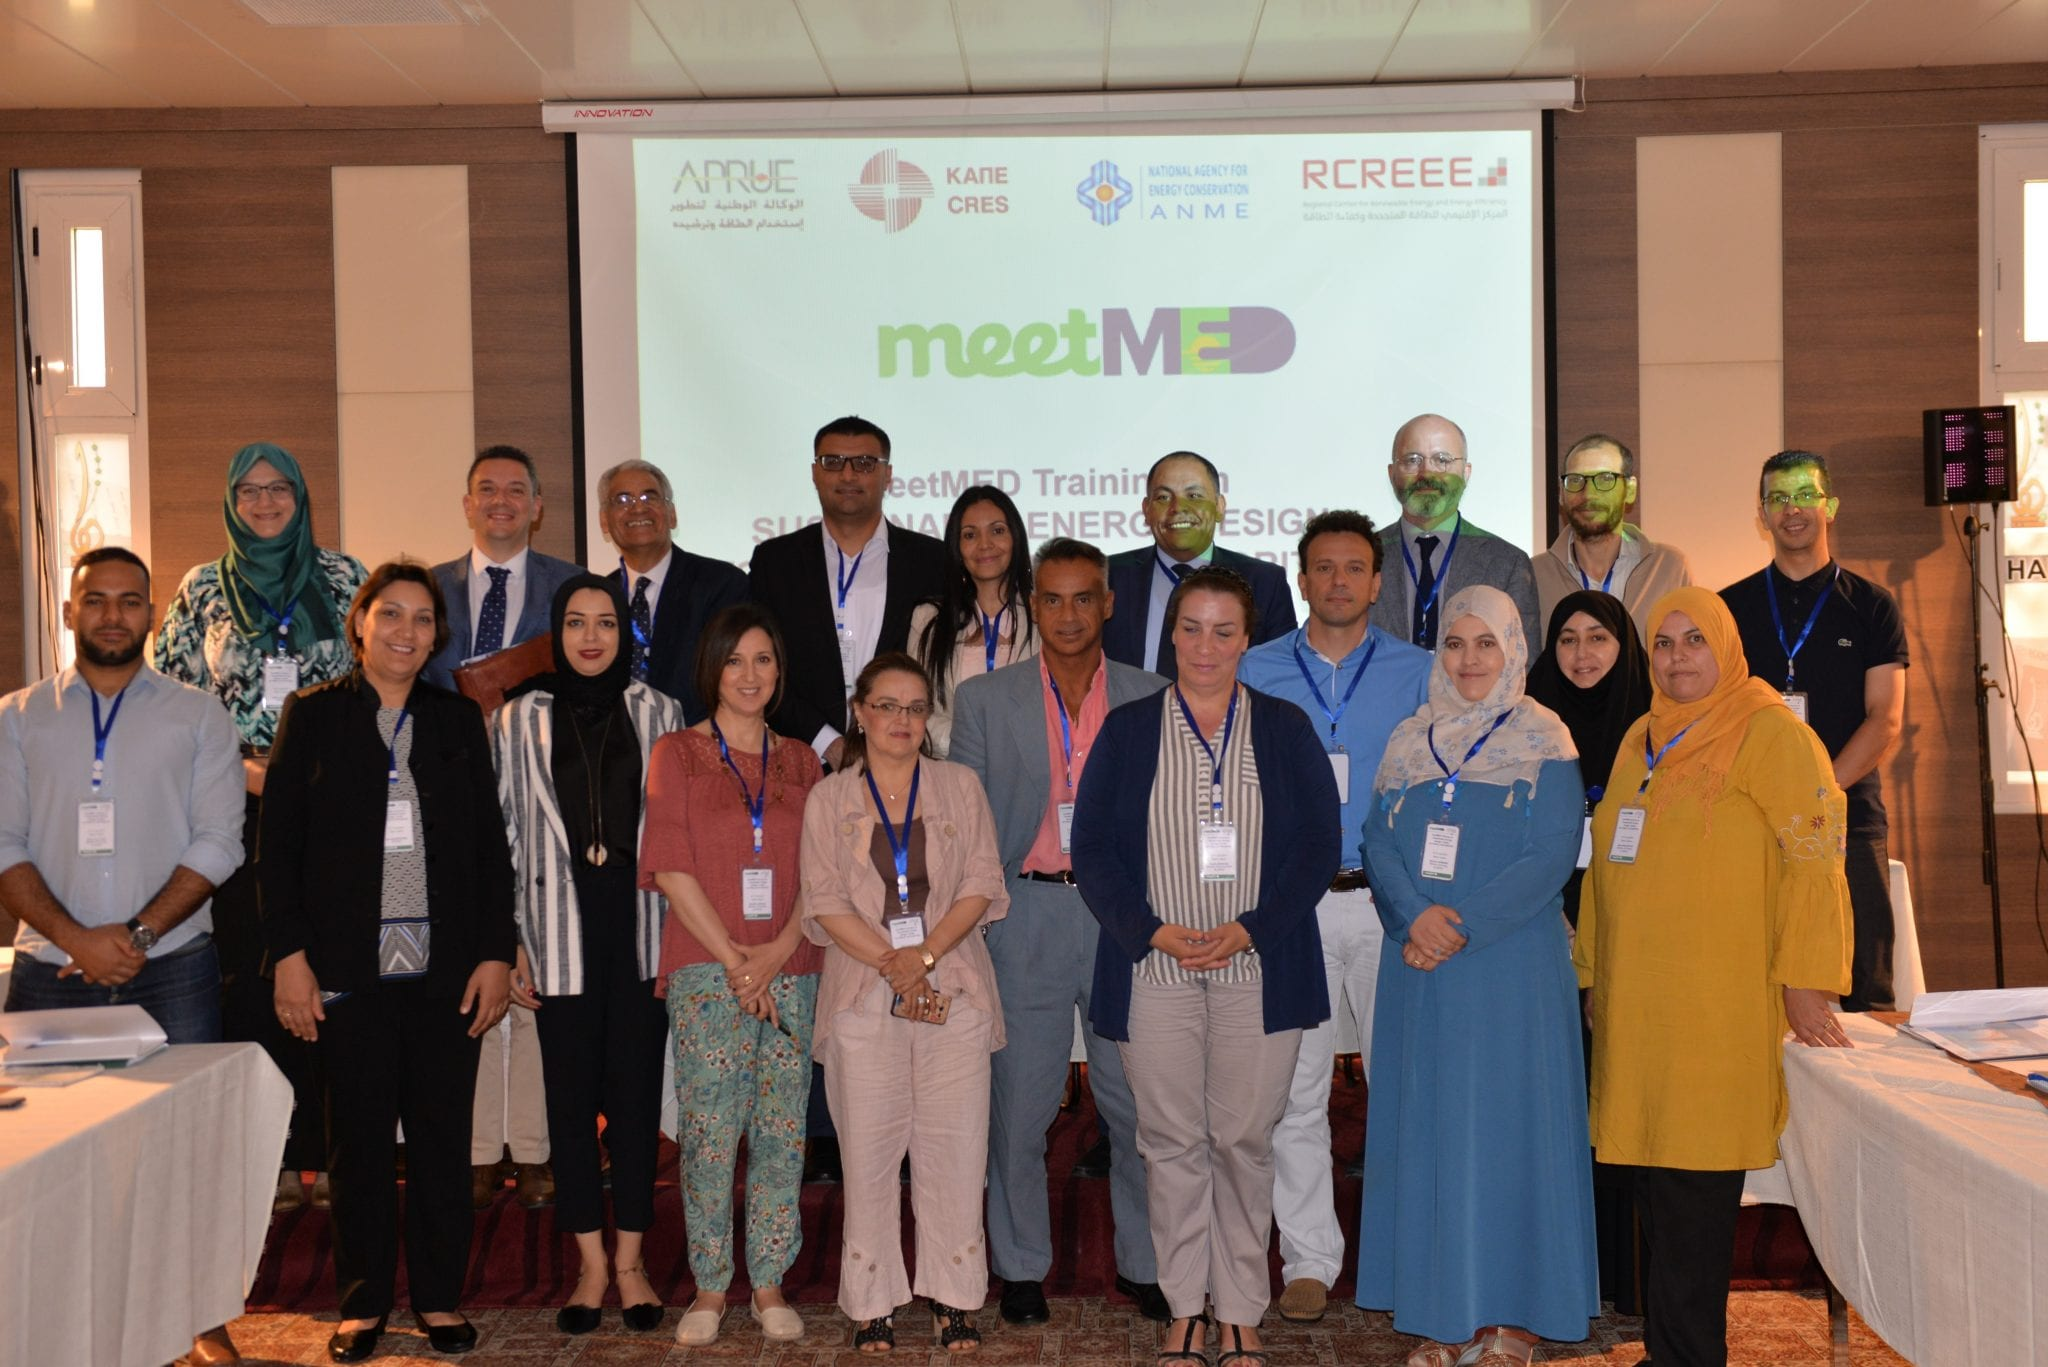 meetMED Training on the use of a Sustainable Energy Design Toolkit for Public Authorities